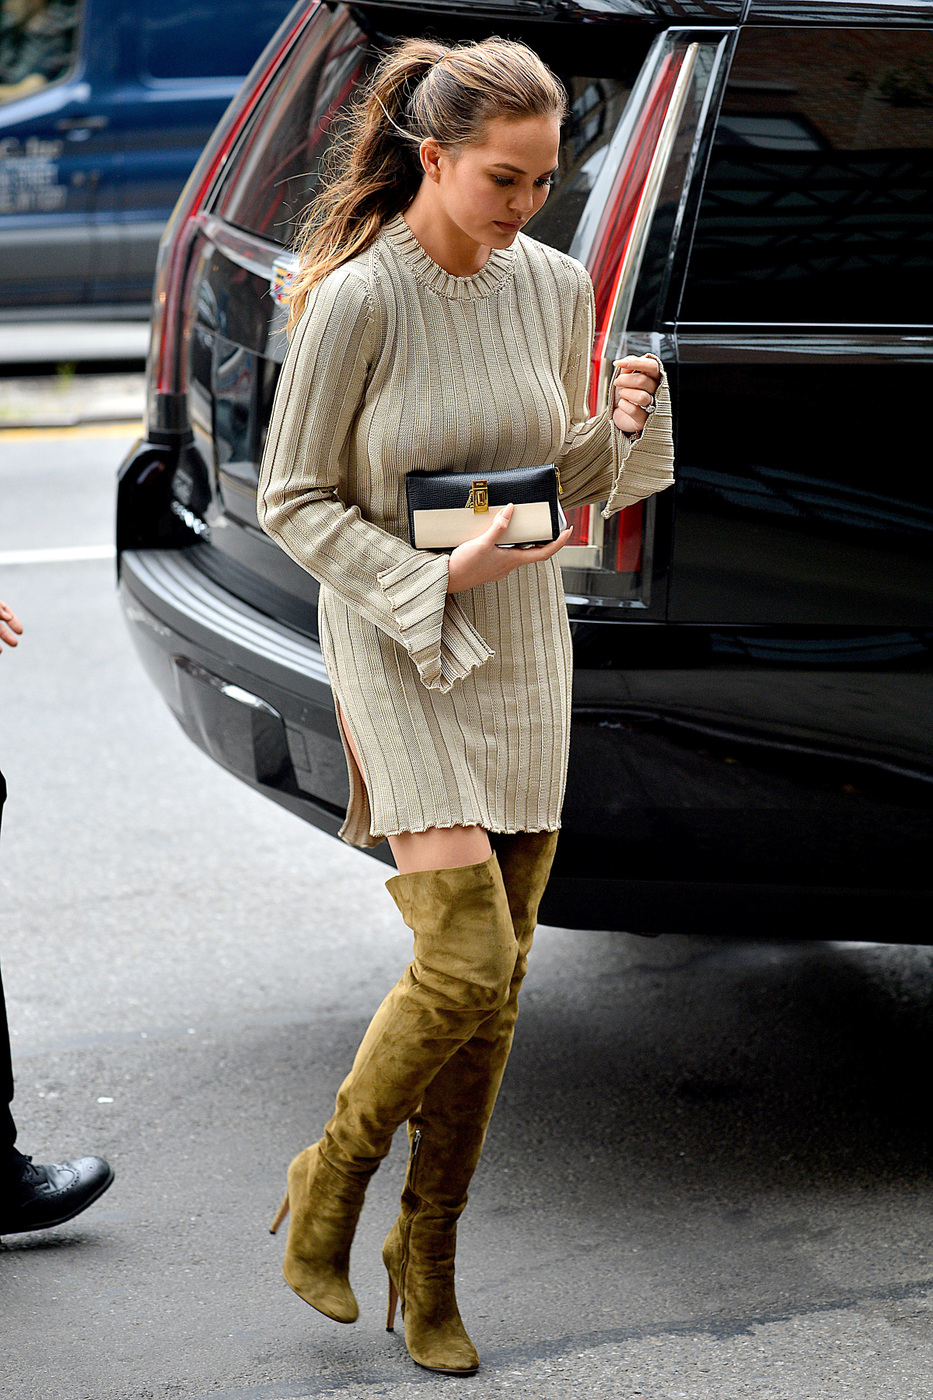 Chrissy Teigen rocks a pair of over the knee suede boots and wool sweater dress as she arrives at her hotel